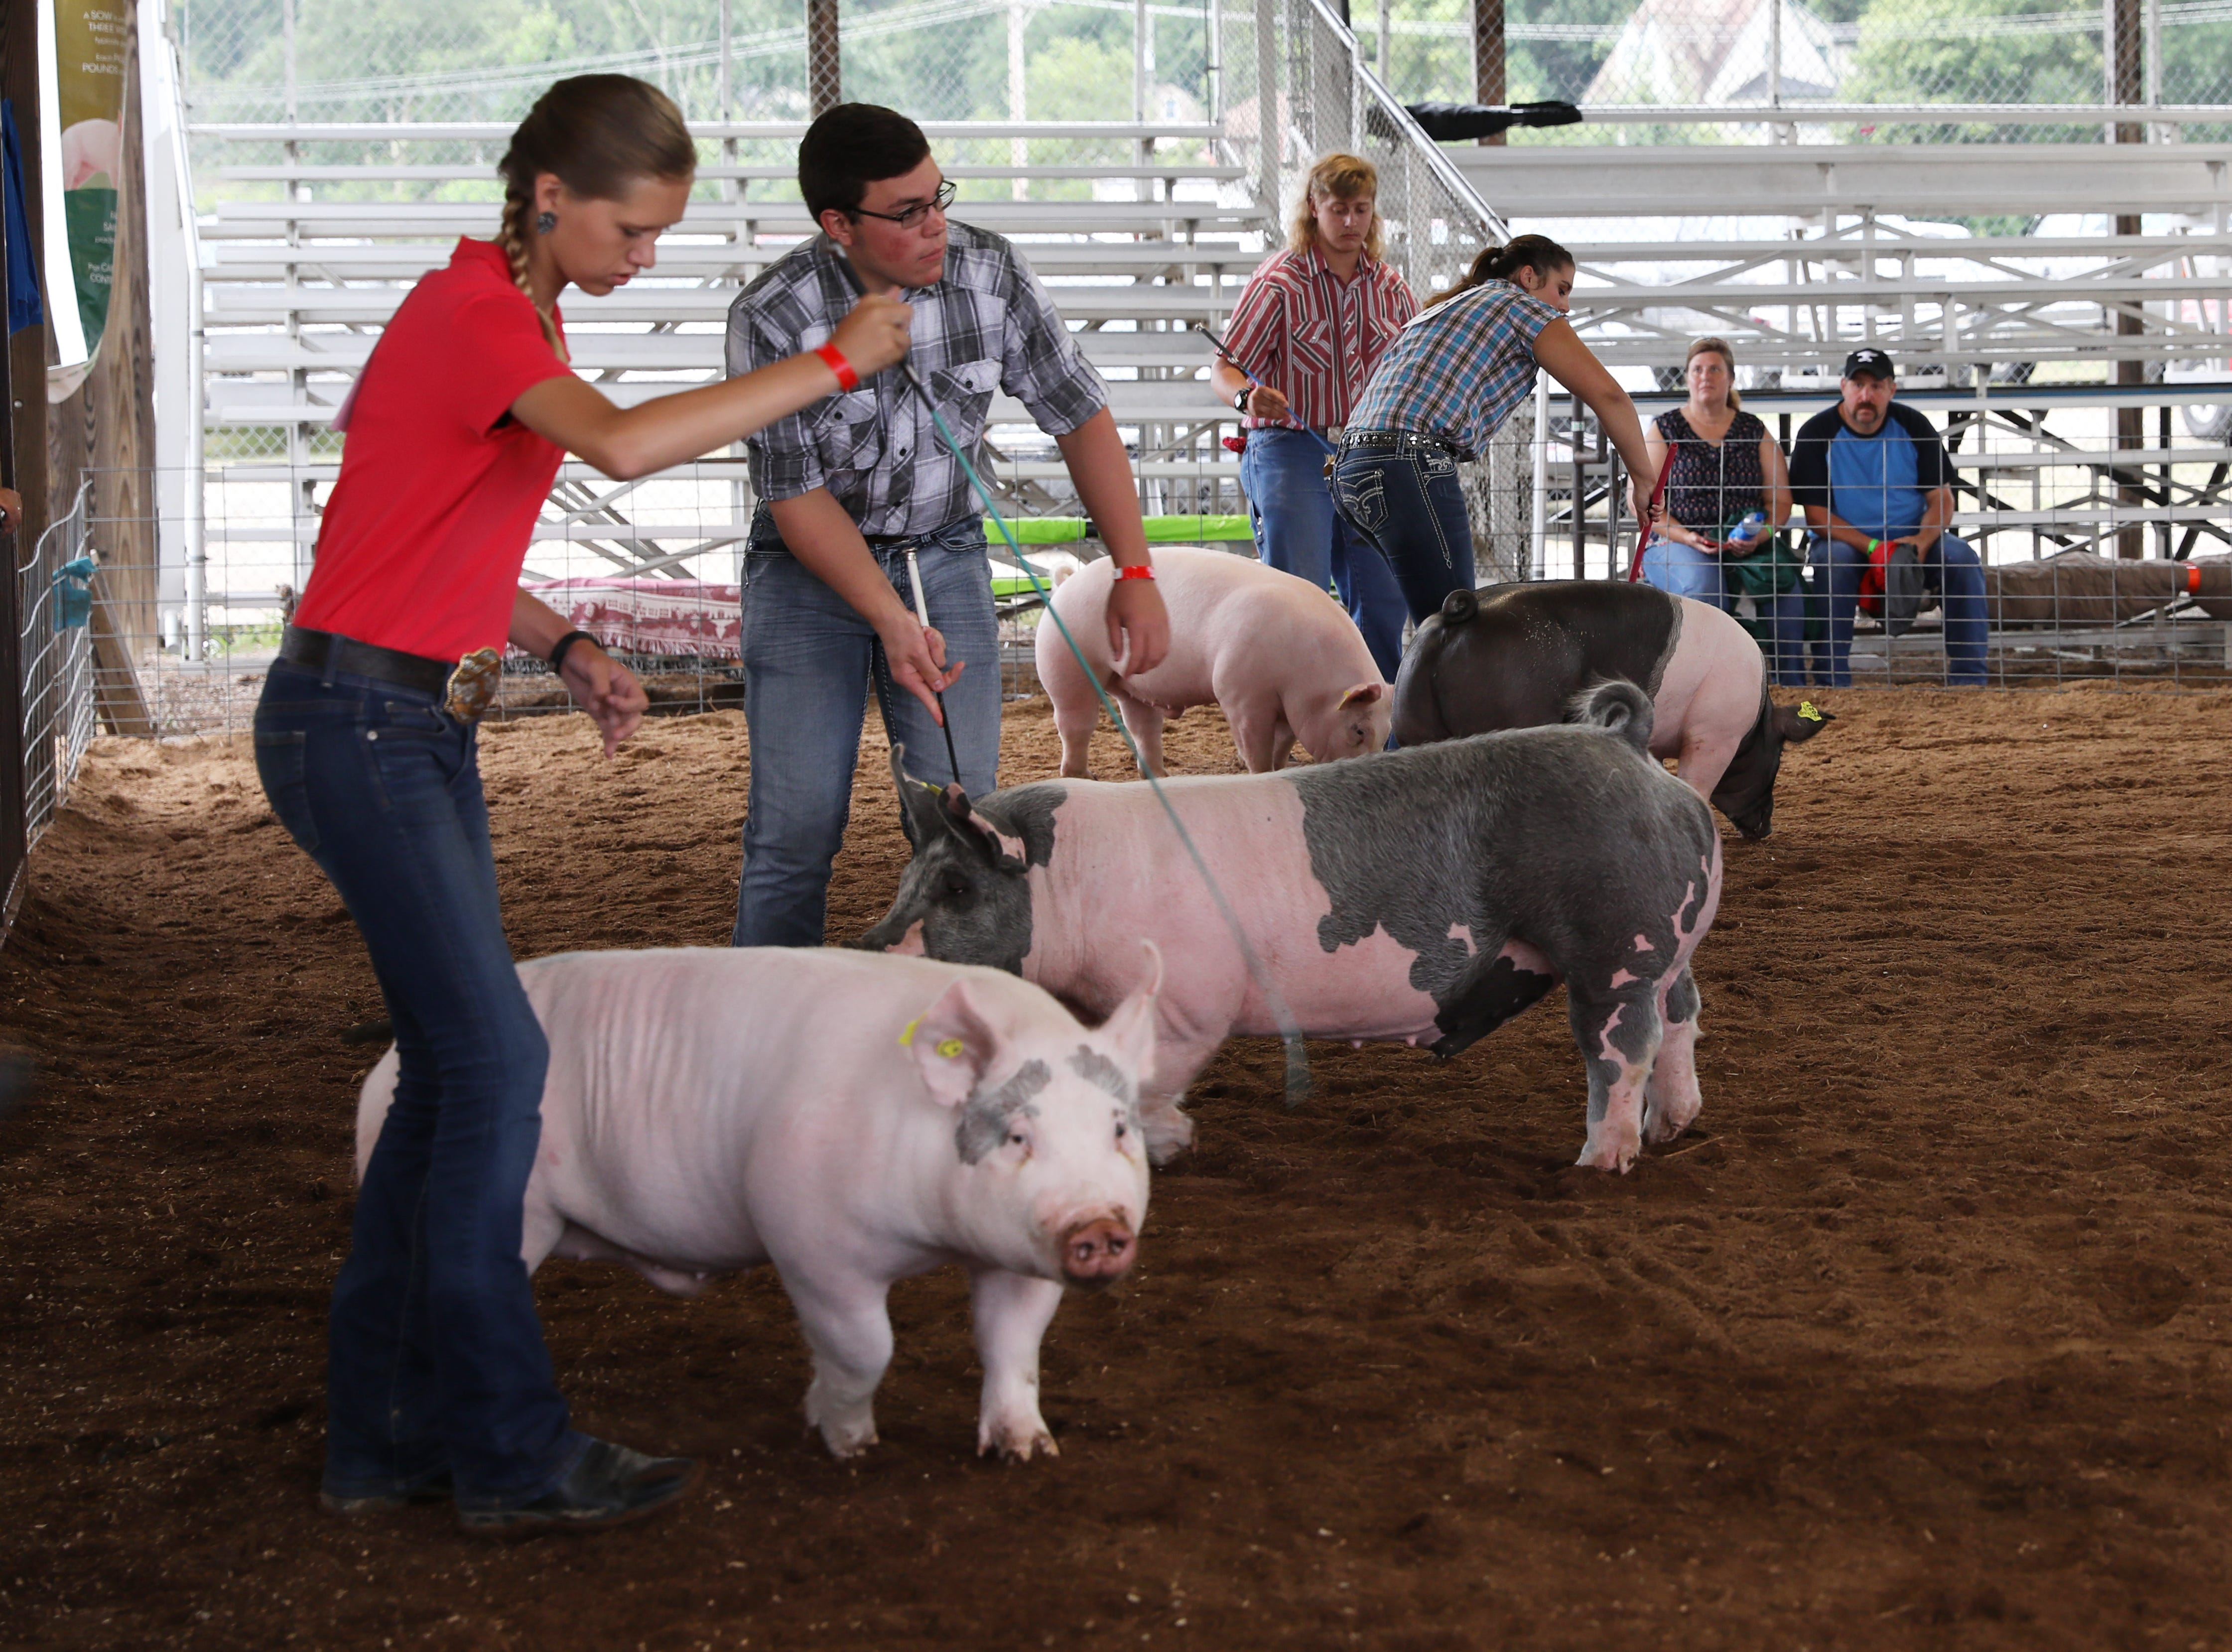 Camryn Caplinger, left, Adam Crock, Tom Mozena and Jaylee Jordan show hogs during the Showman of Showmen competition at the Muskingum County Fair on Friday.